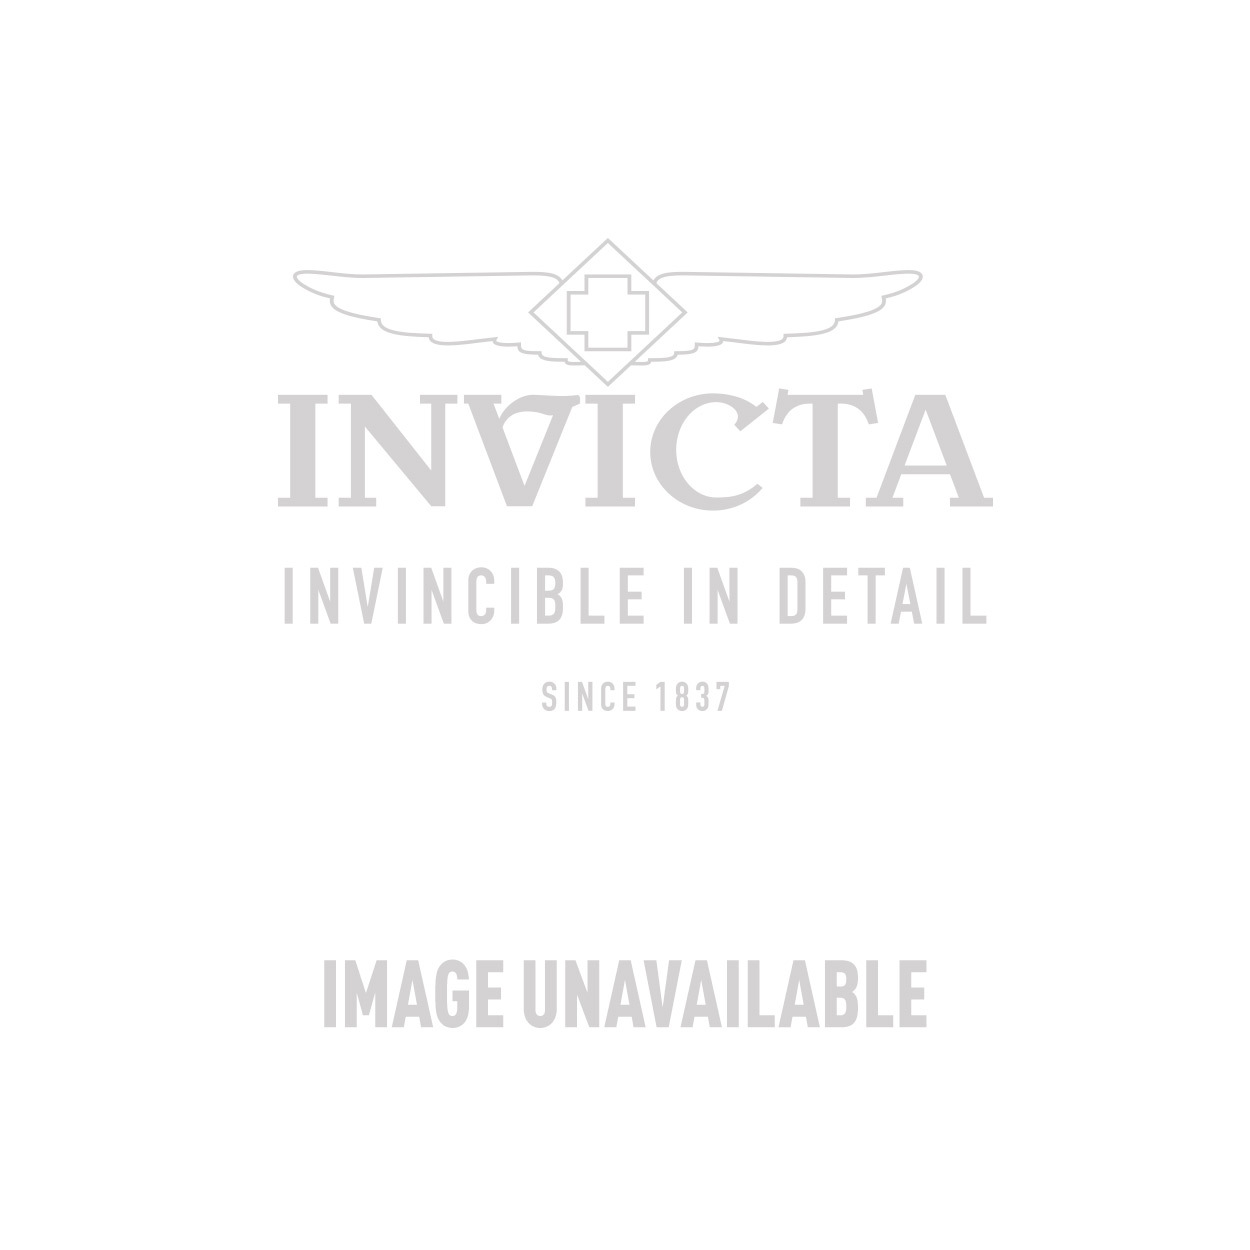 Invicta Venom Swiss Made Quartz Watch - Stainless Steel case with Black tone Silicone band - Model 19006